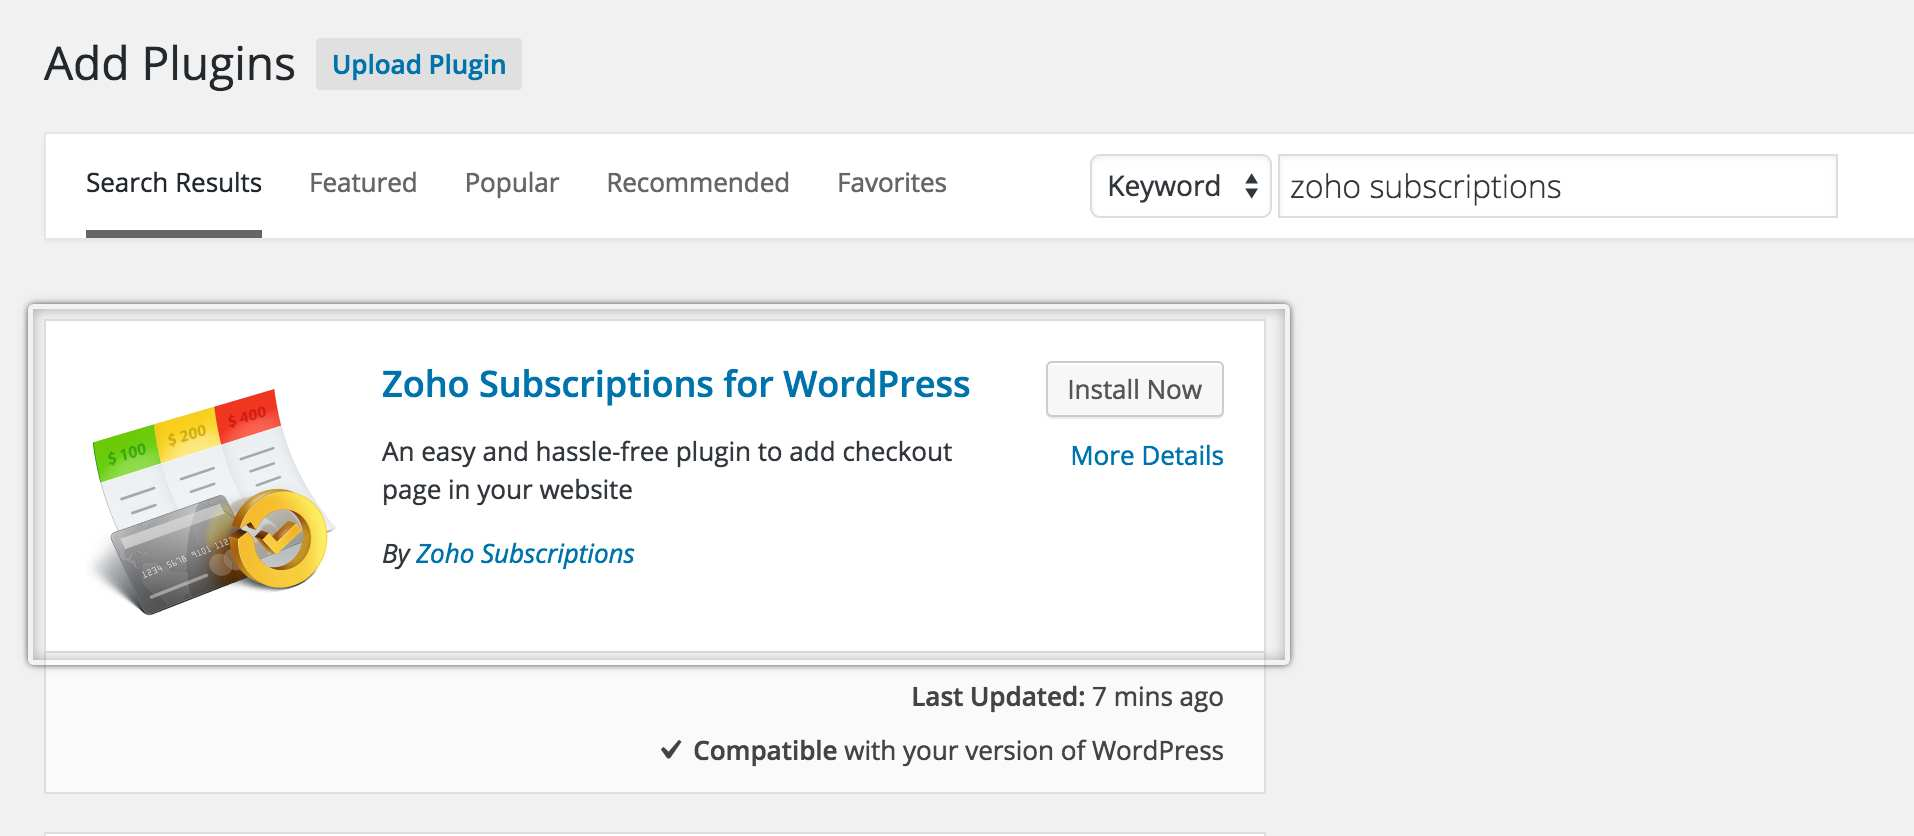 Zoho Subscriptions for WordPress Plugin WordPress, Download, Install